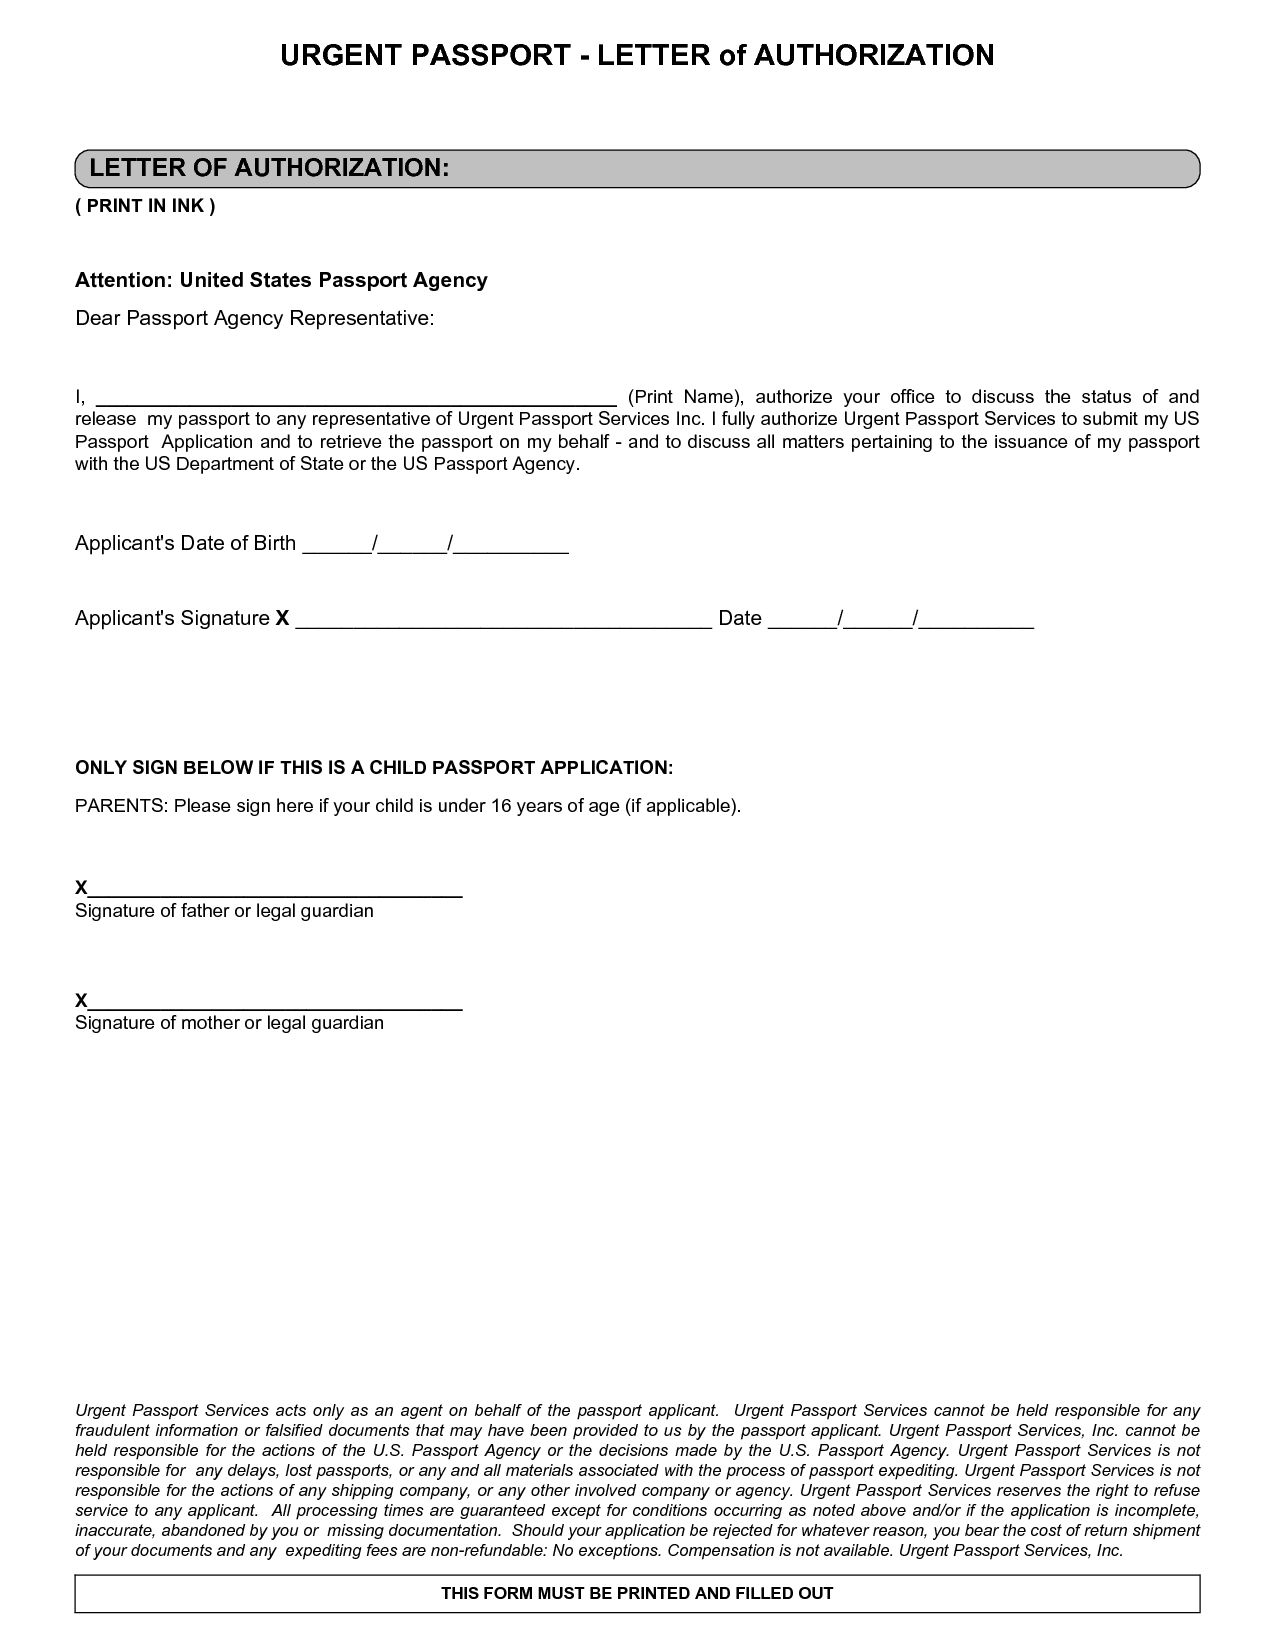 Letter Notarized Parental Authorization Sample Receive Passport For Notarized Letter Template For Child Travel 10 P Lettering Letter Templates Letter Sample